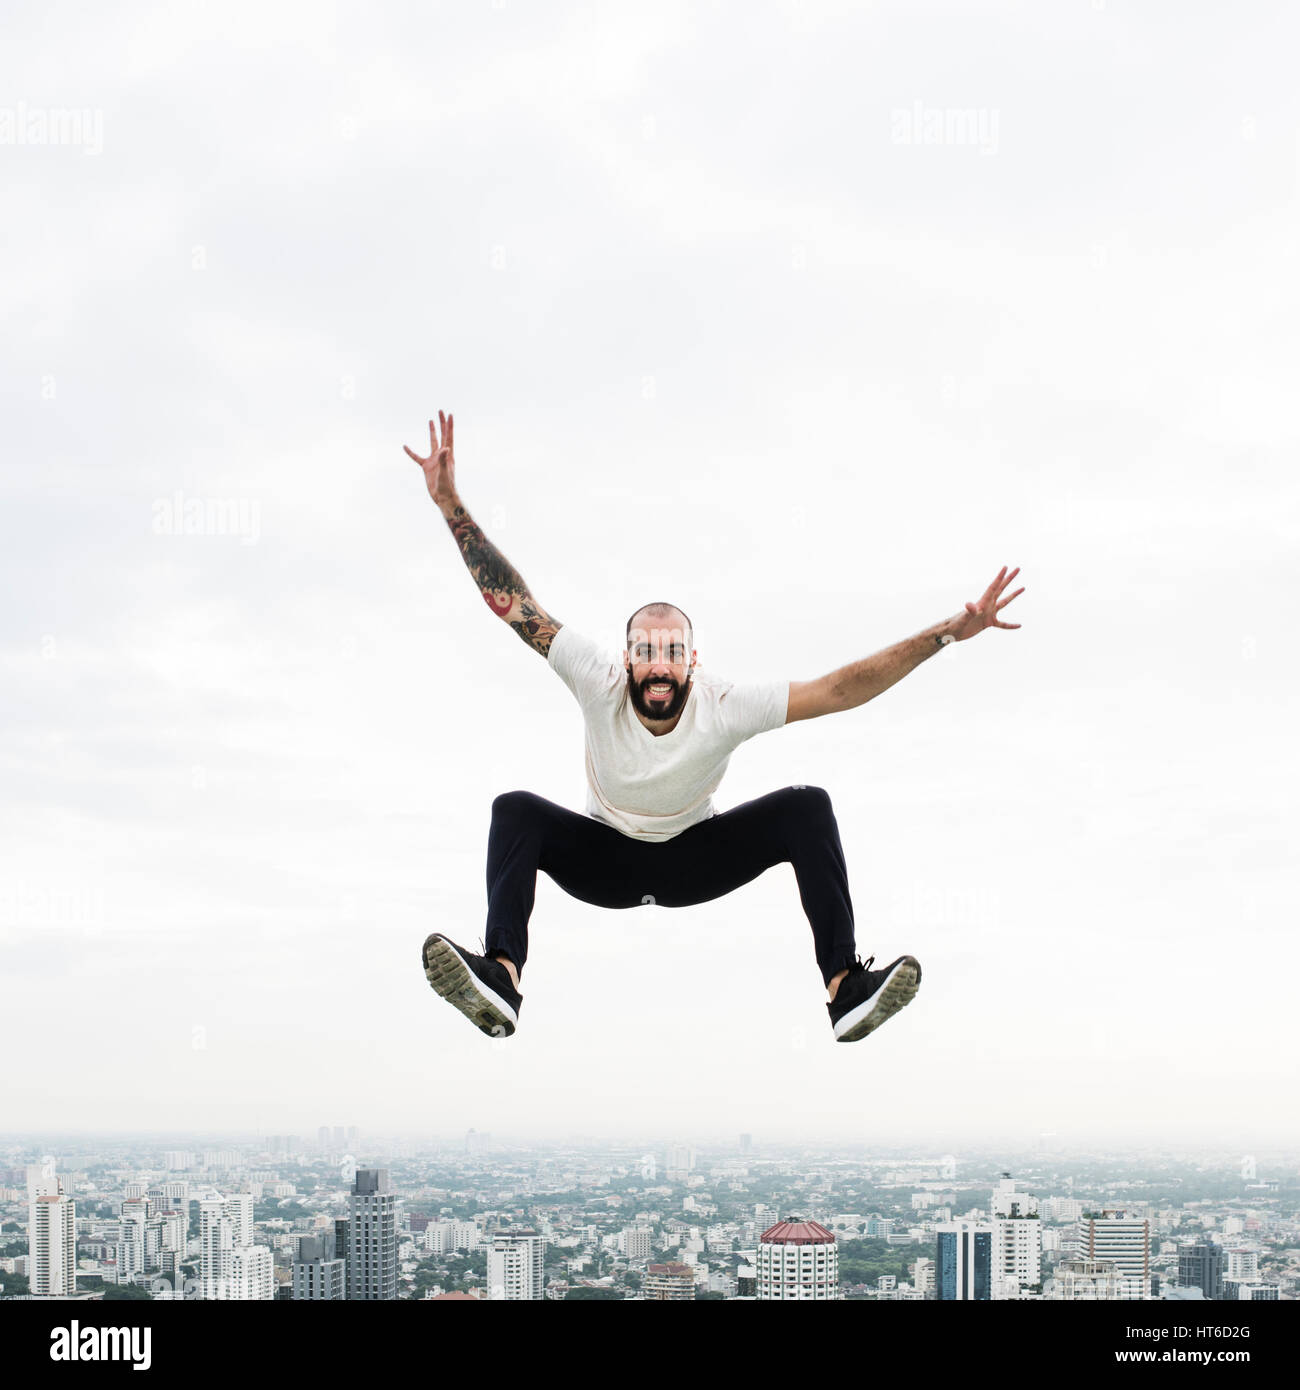 Man Practice Yoga Rooftop Concept Stock Photo